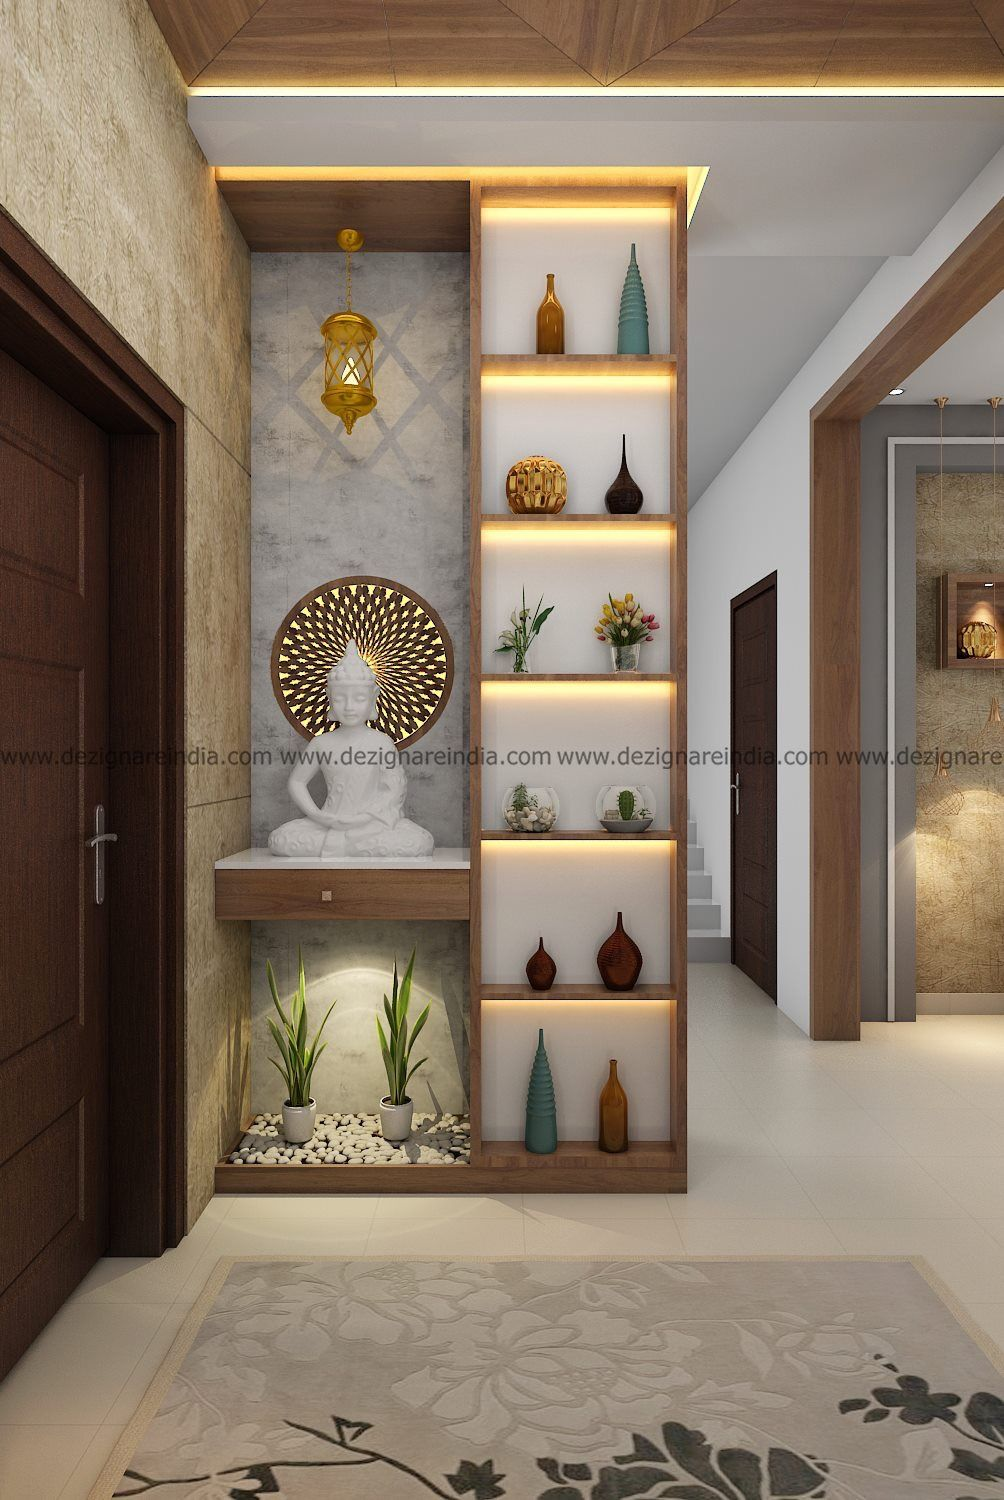 Wall divider | Interior in 2019 | Entryway decor, Foyer ...